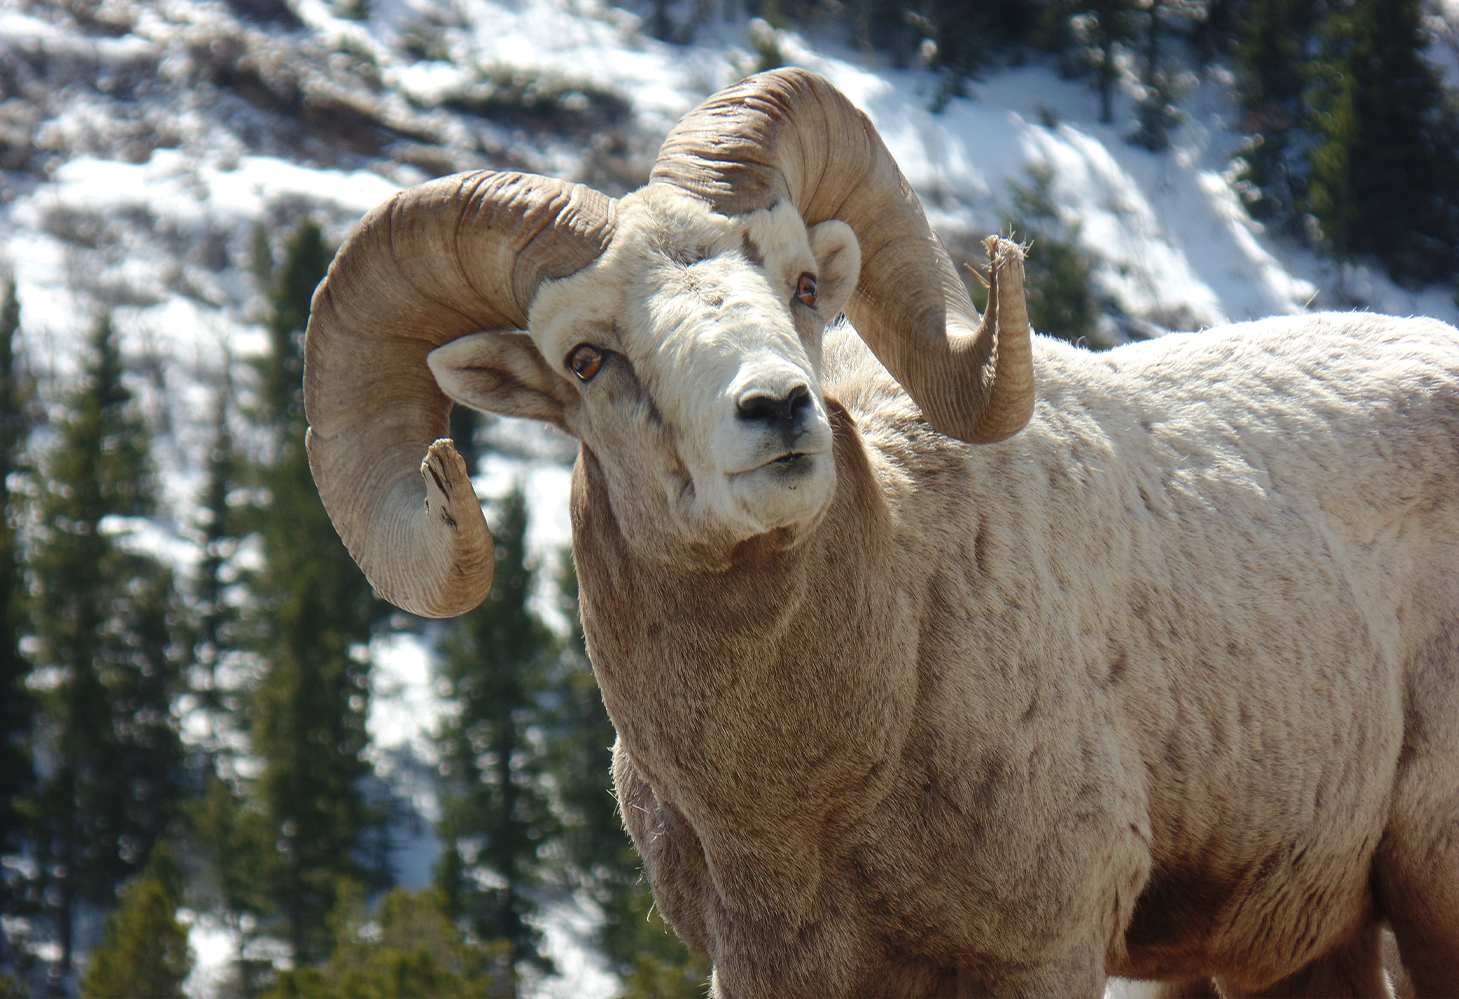 A bighorn sheep with large curved horns look at camera with snow and trees in the background